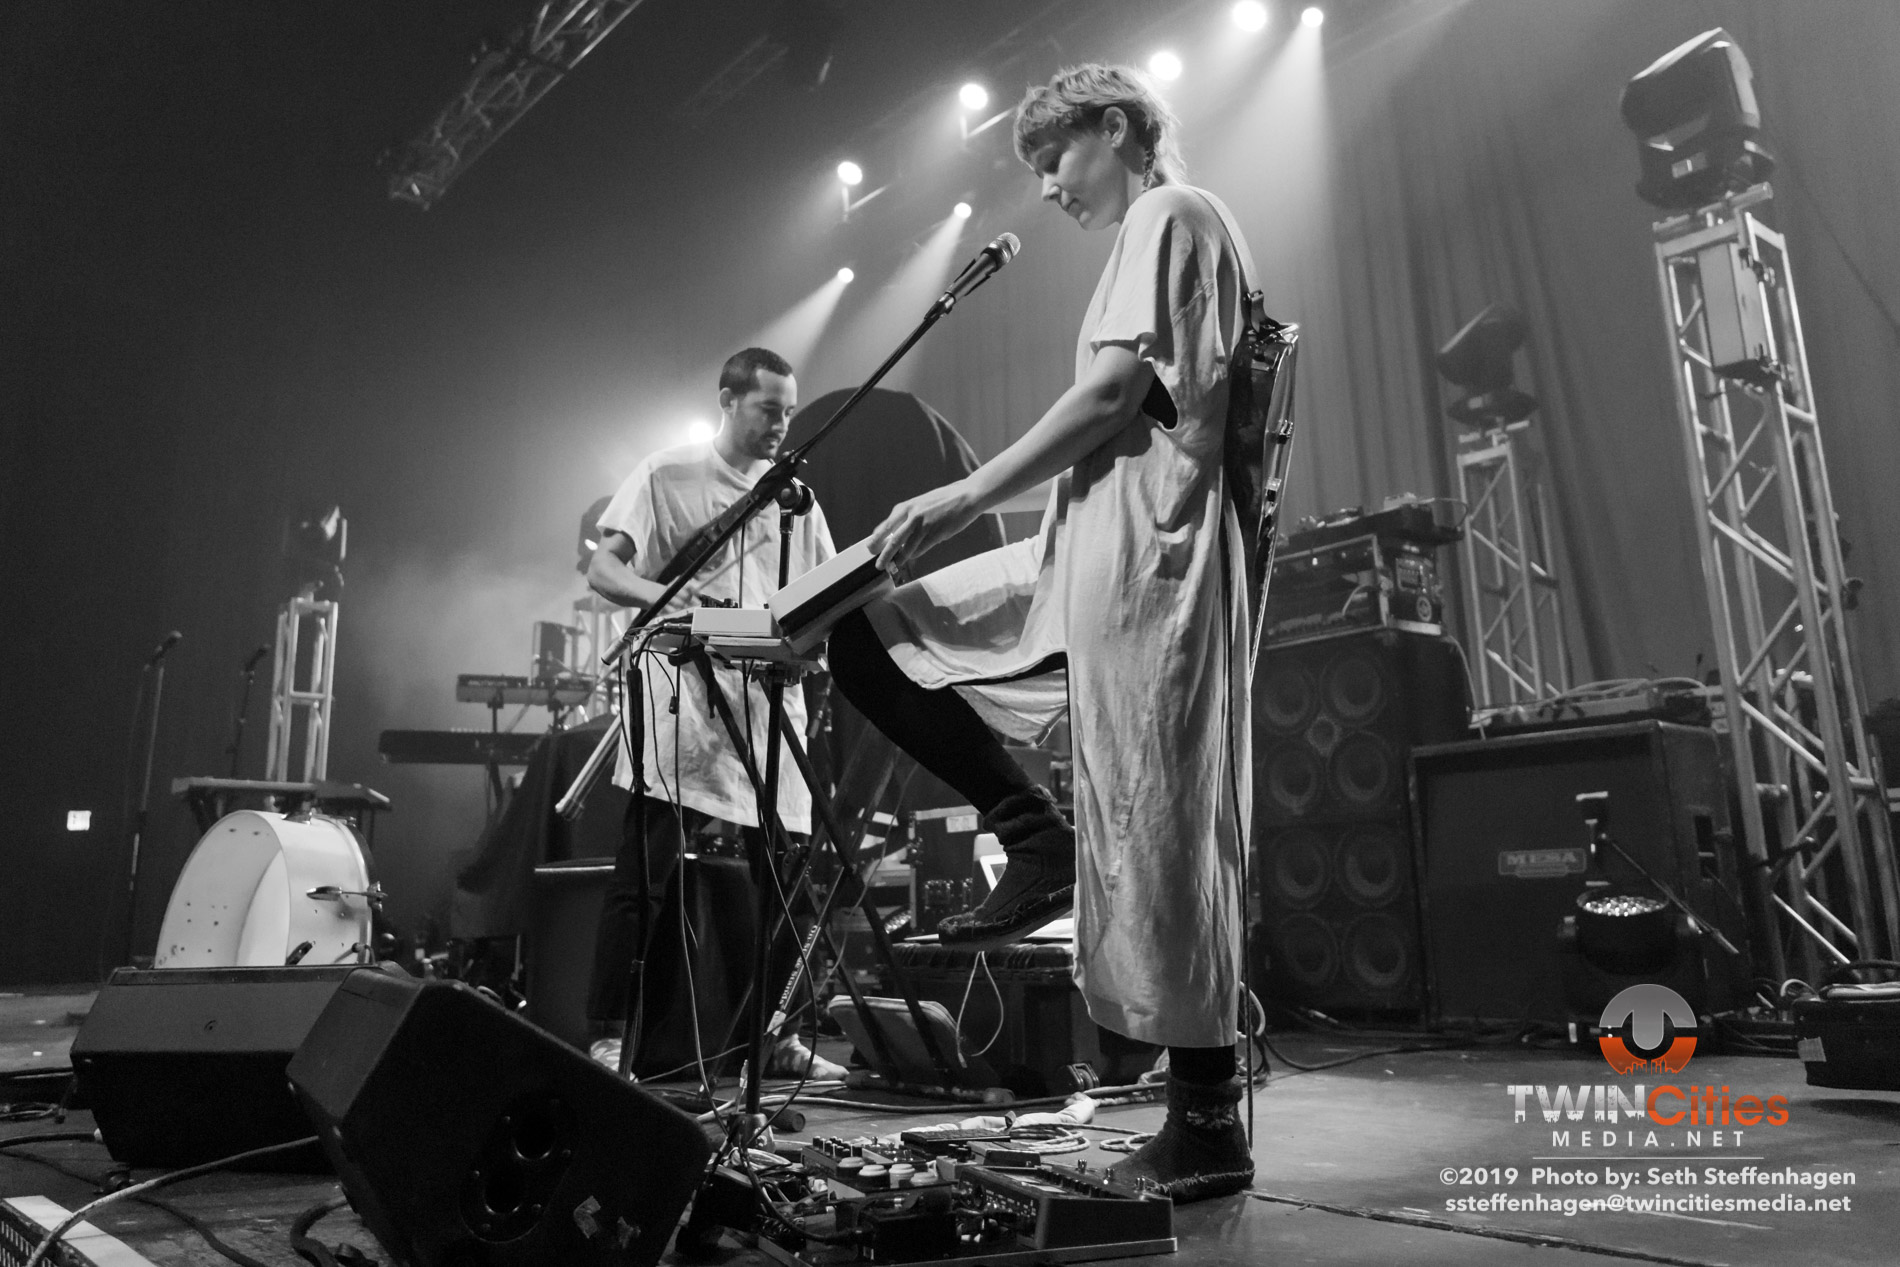 May 15, 2019 - Minneapolis, Minnesota, United States - Buke And Gase live in concert at the Skyway Theatre opening for Animals As Leaders.  (Photo by Seth Steffenhagen/Steffenhagen Photography)